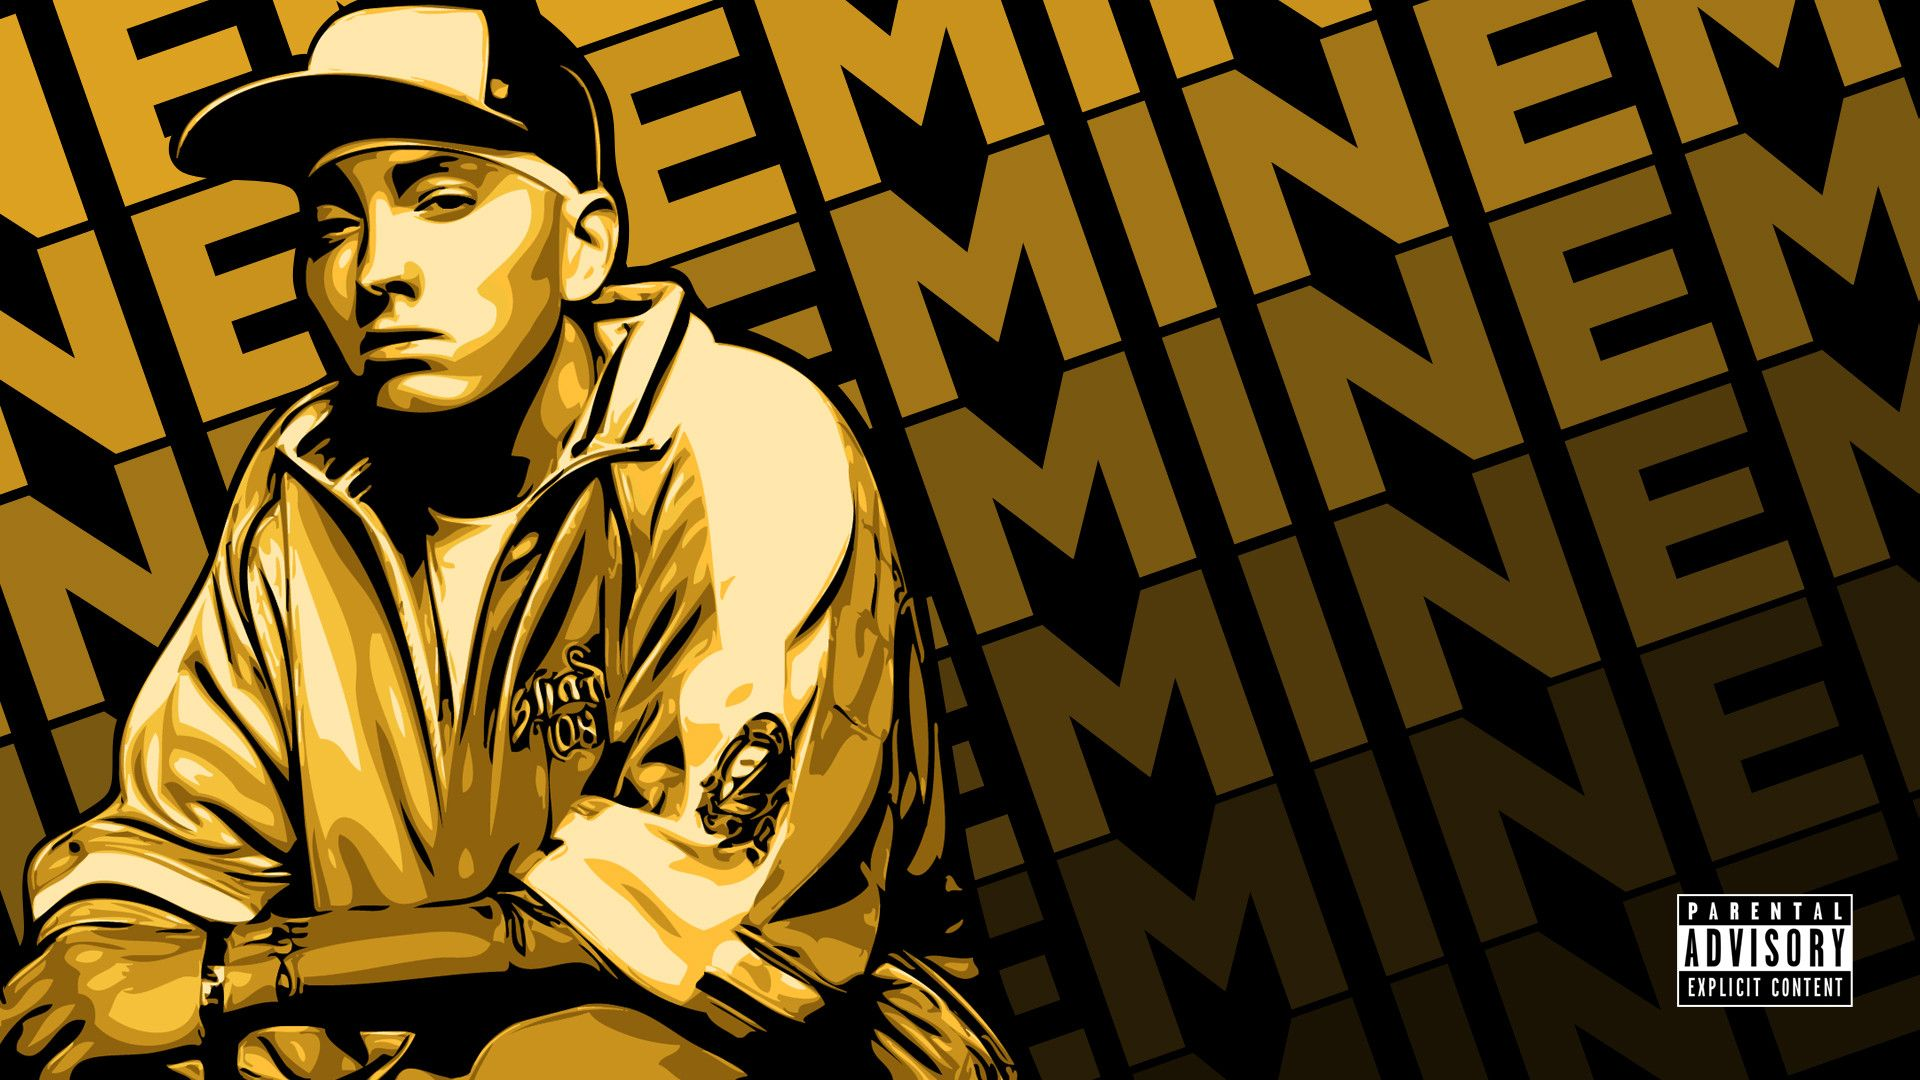 Eminem-HD-wallpaper-wp3805060